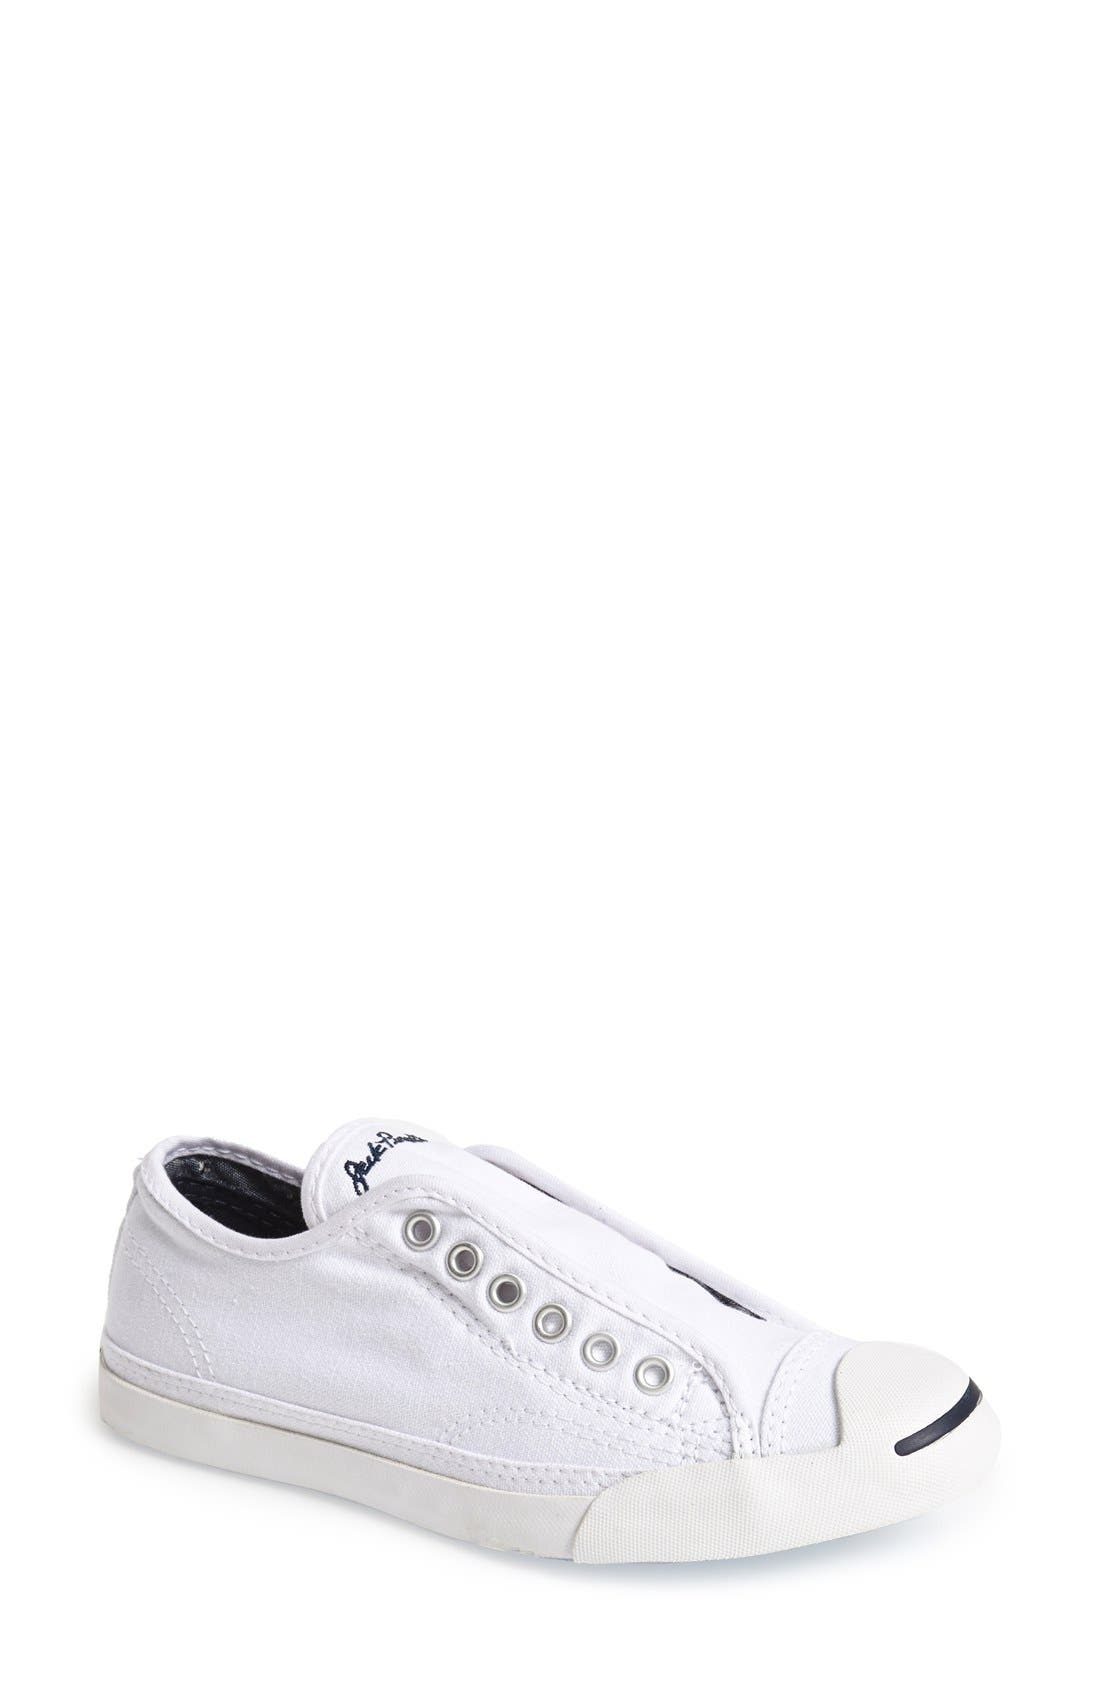 Alternate Image 1 Selected - Converse Jack Purcell Low Top Sneaker (Women)